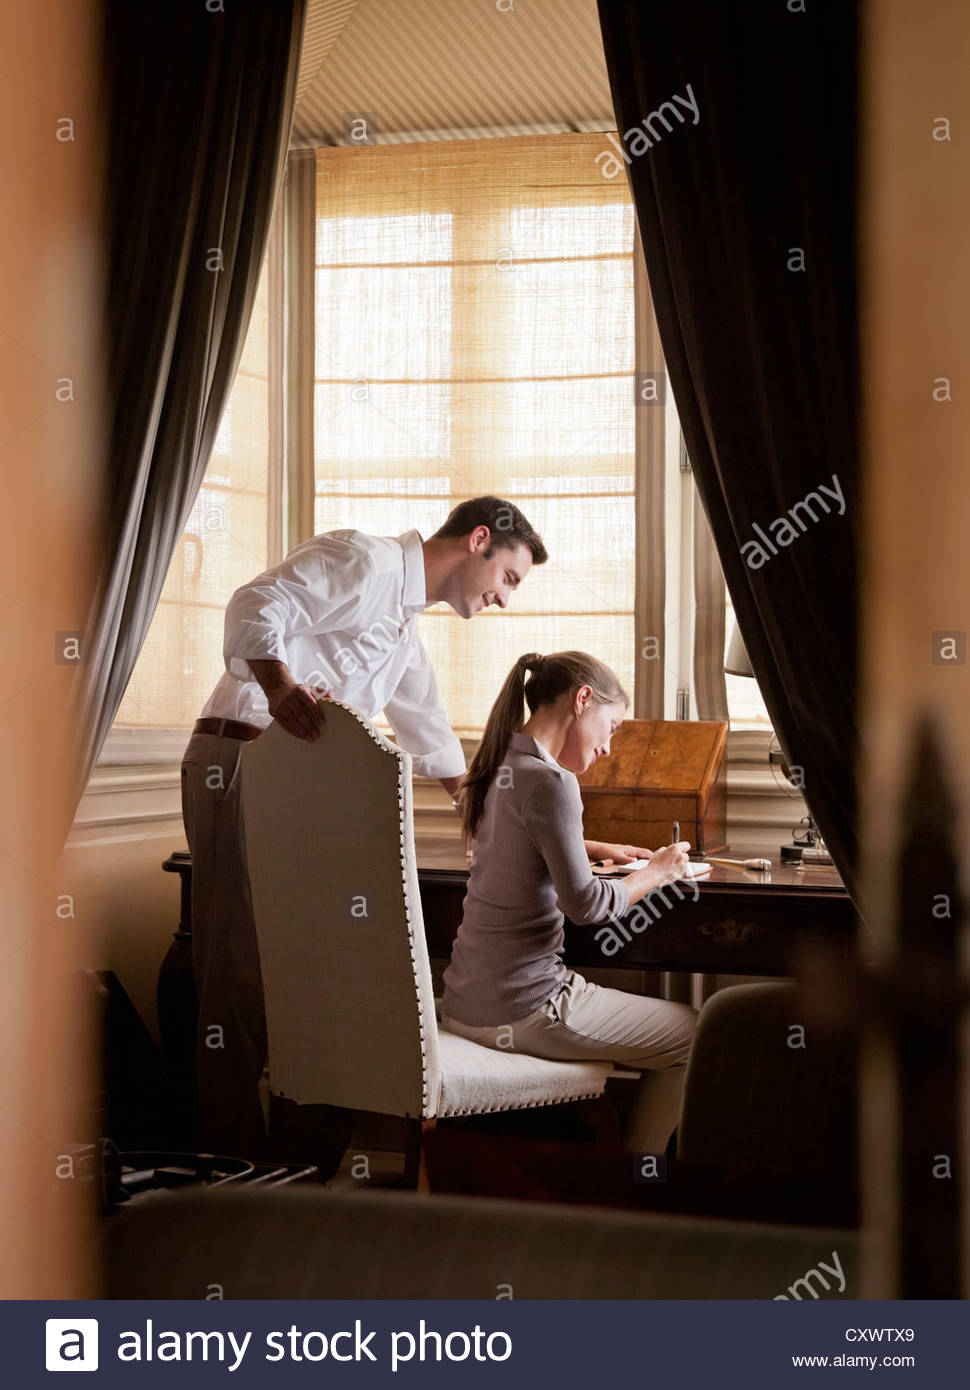 Couple writing at desk in study - Stock Image